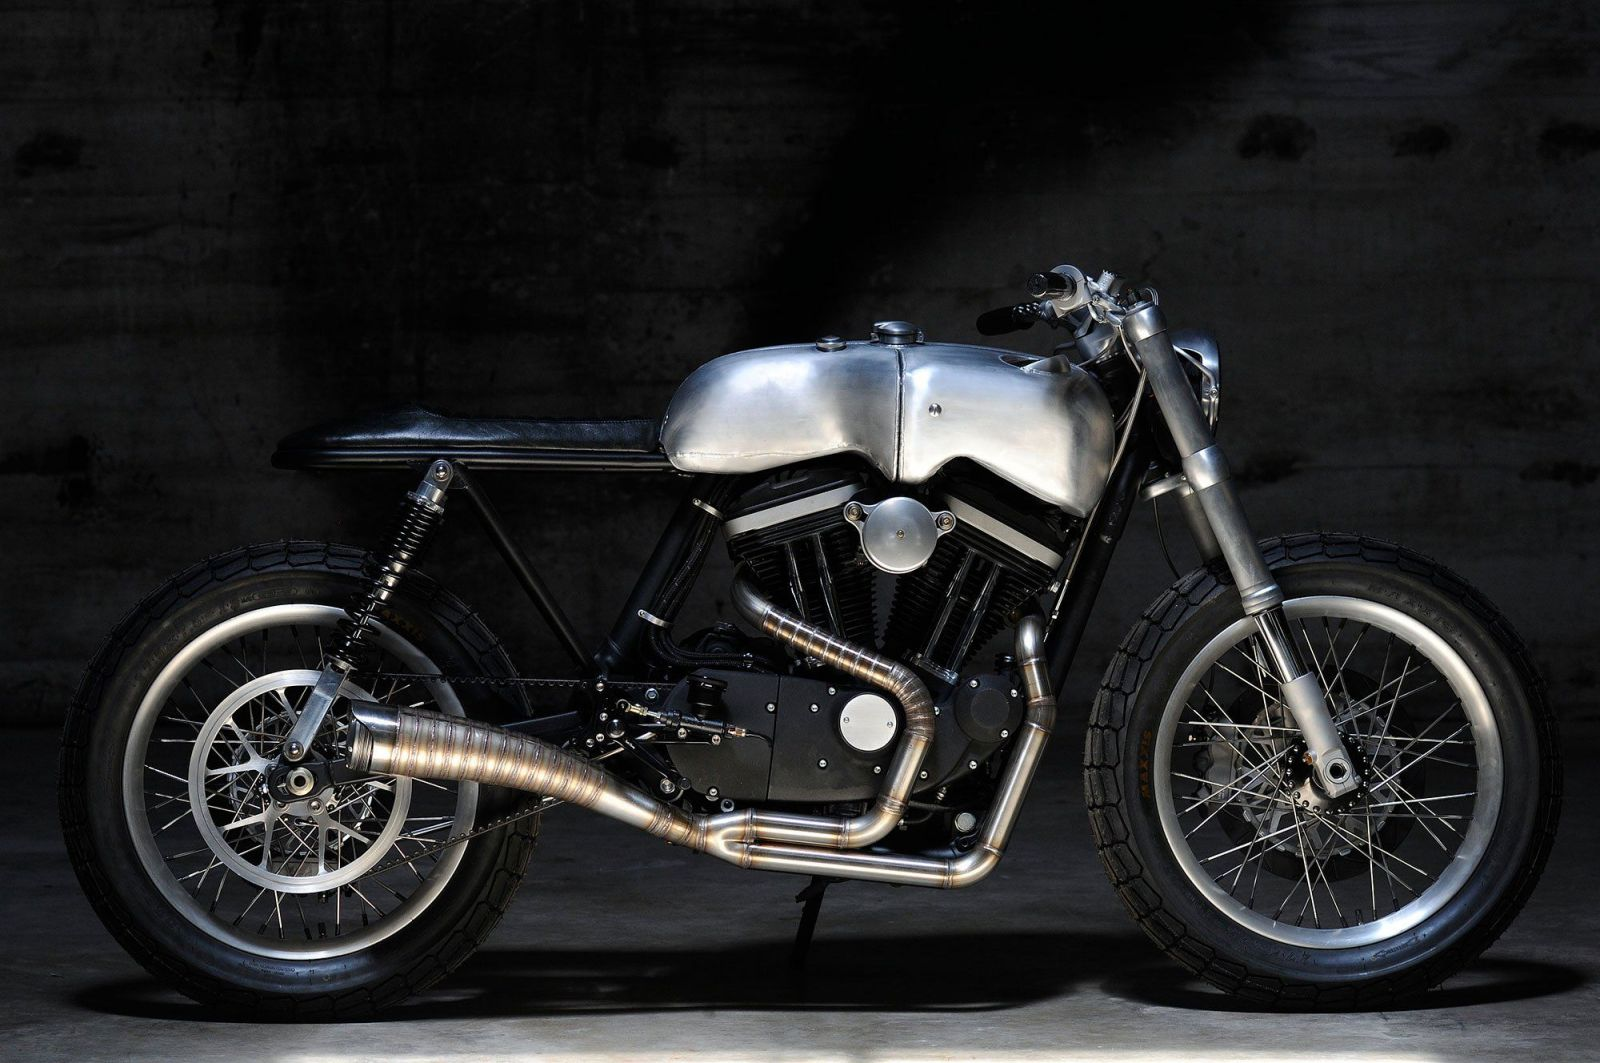 The Hardley custom Harley-Davidson